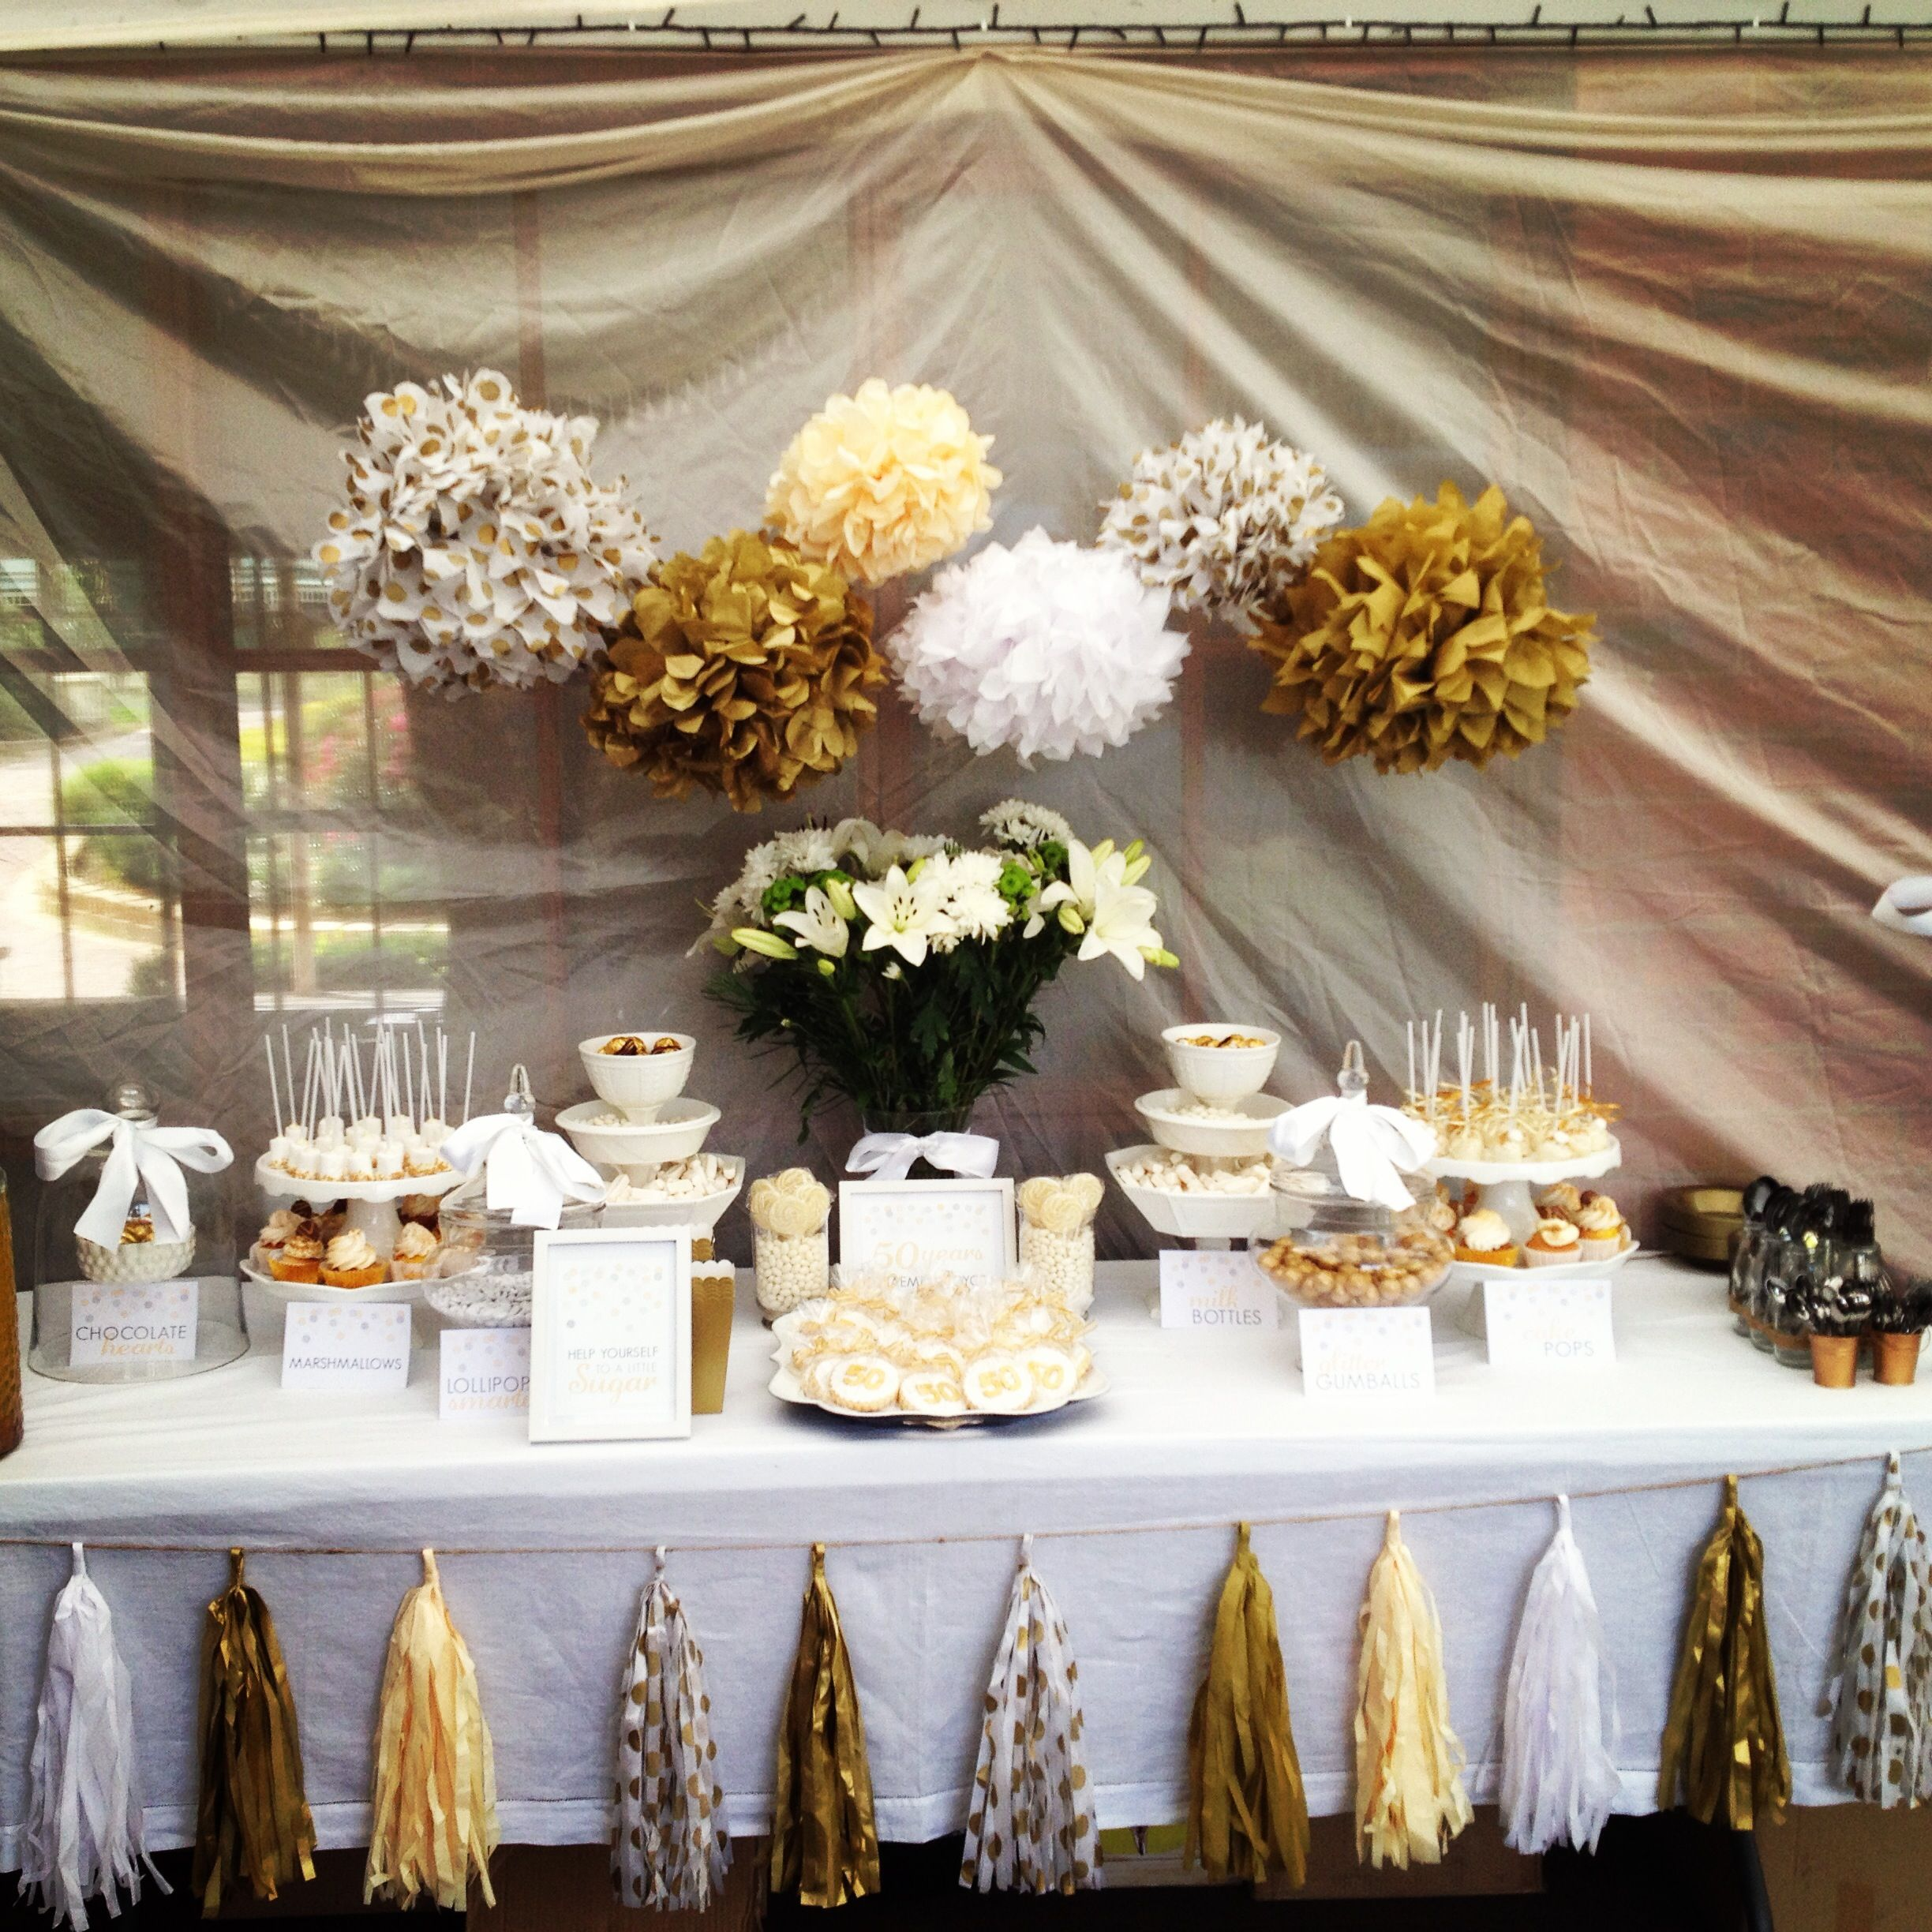 Polkadot parties 50th wedding anniversary entertaining for 50th anniversary decoration ideas